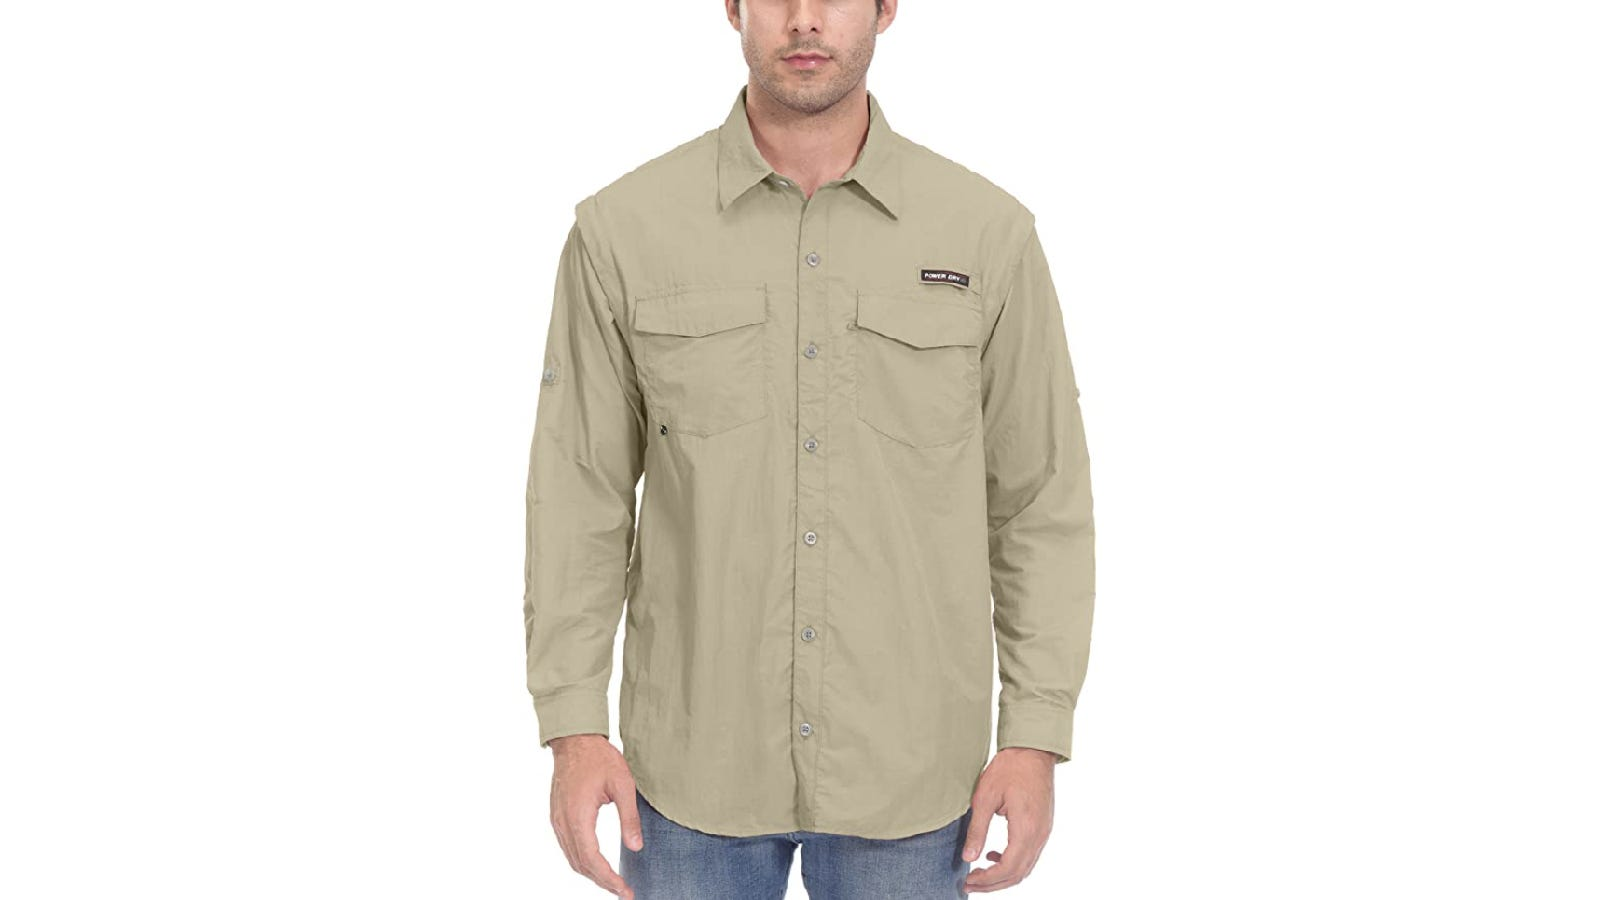 A model at centerframe wears a pale khaki, long-sleeve button-down that's crafted from nylon and features two chest pockets.